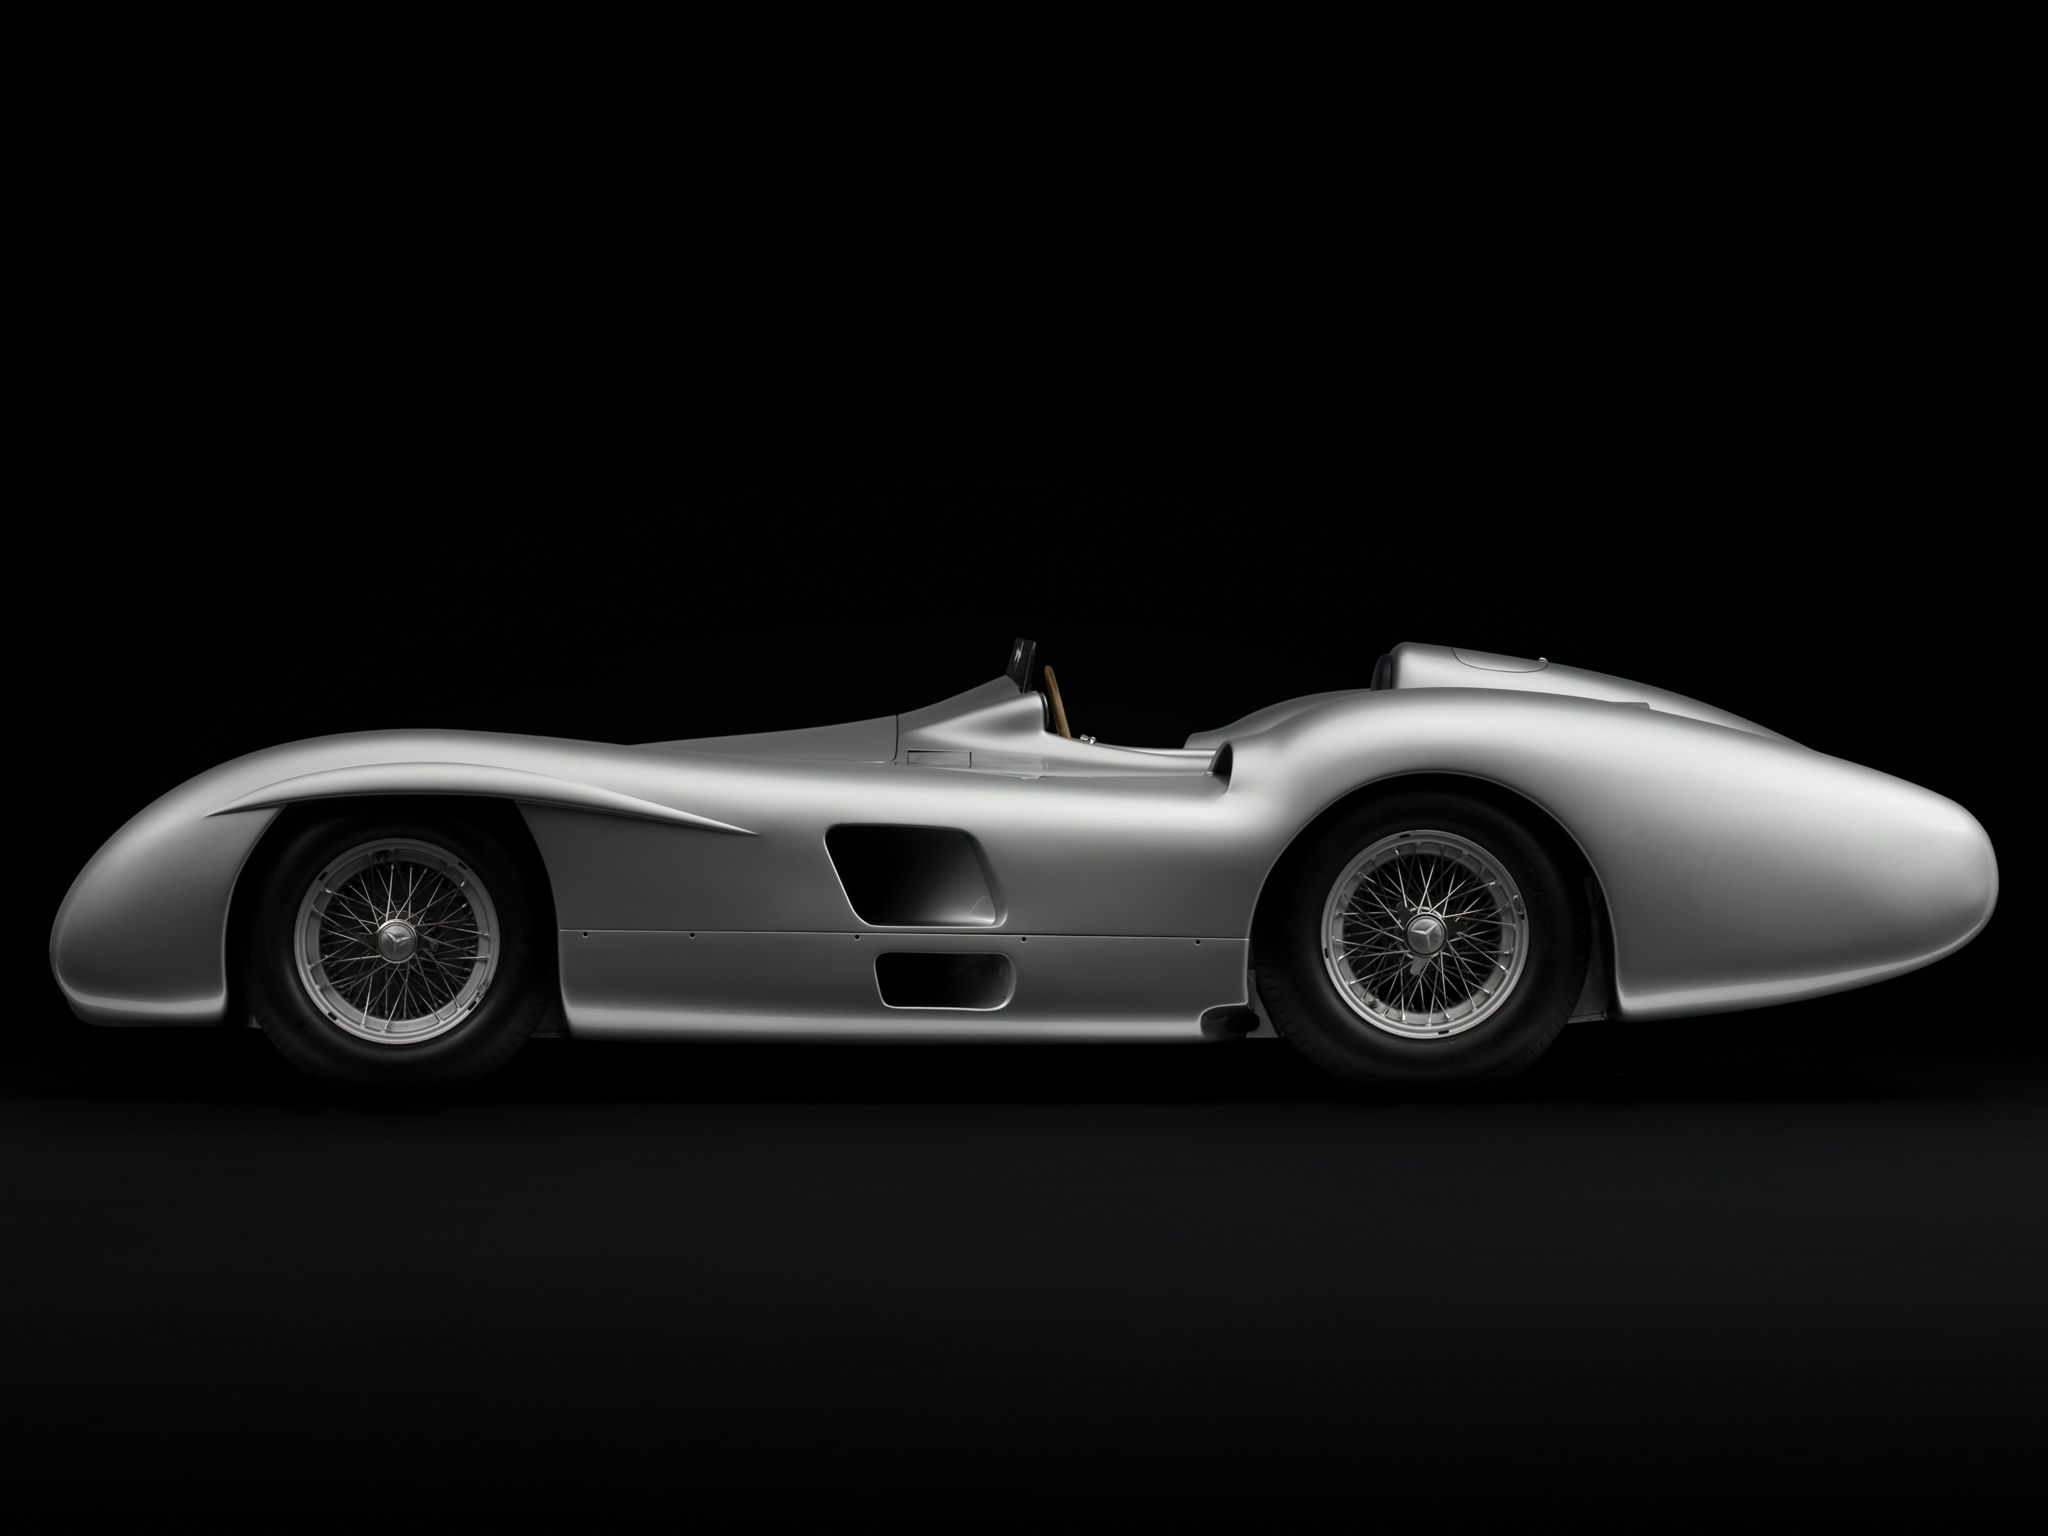 1955 Mercedes Benz 300 Slr Streamliner W196r With Images